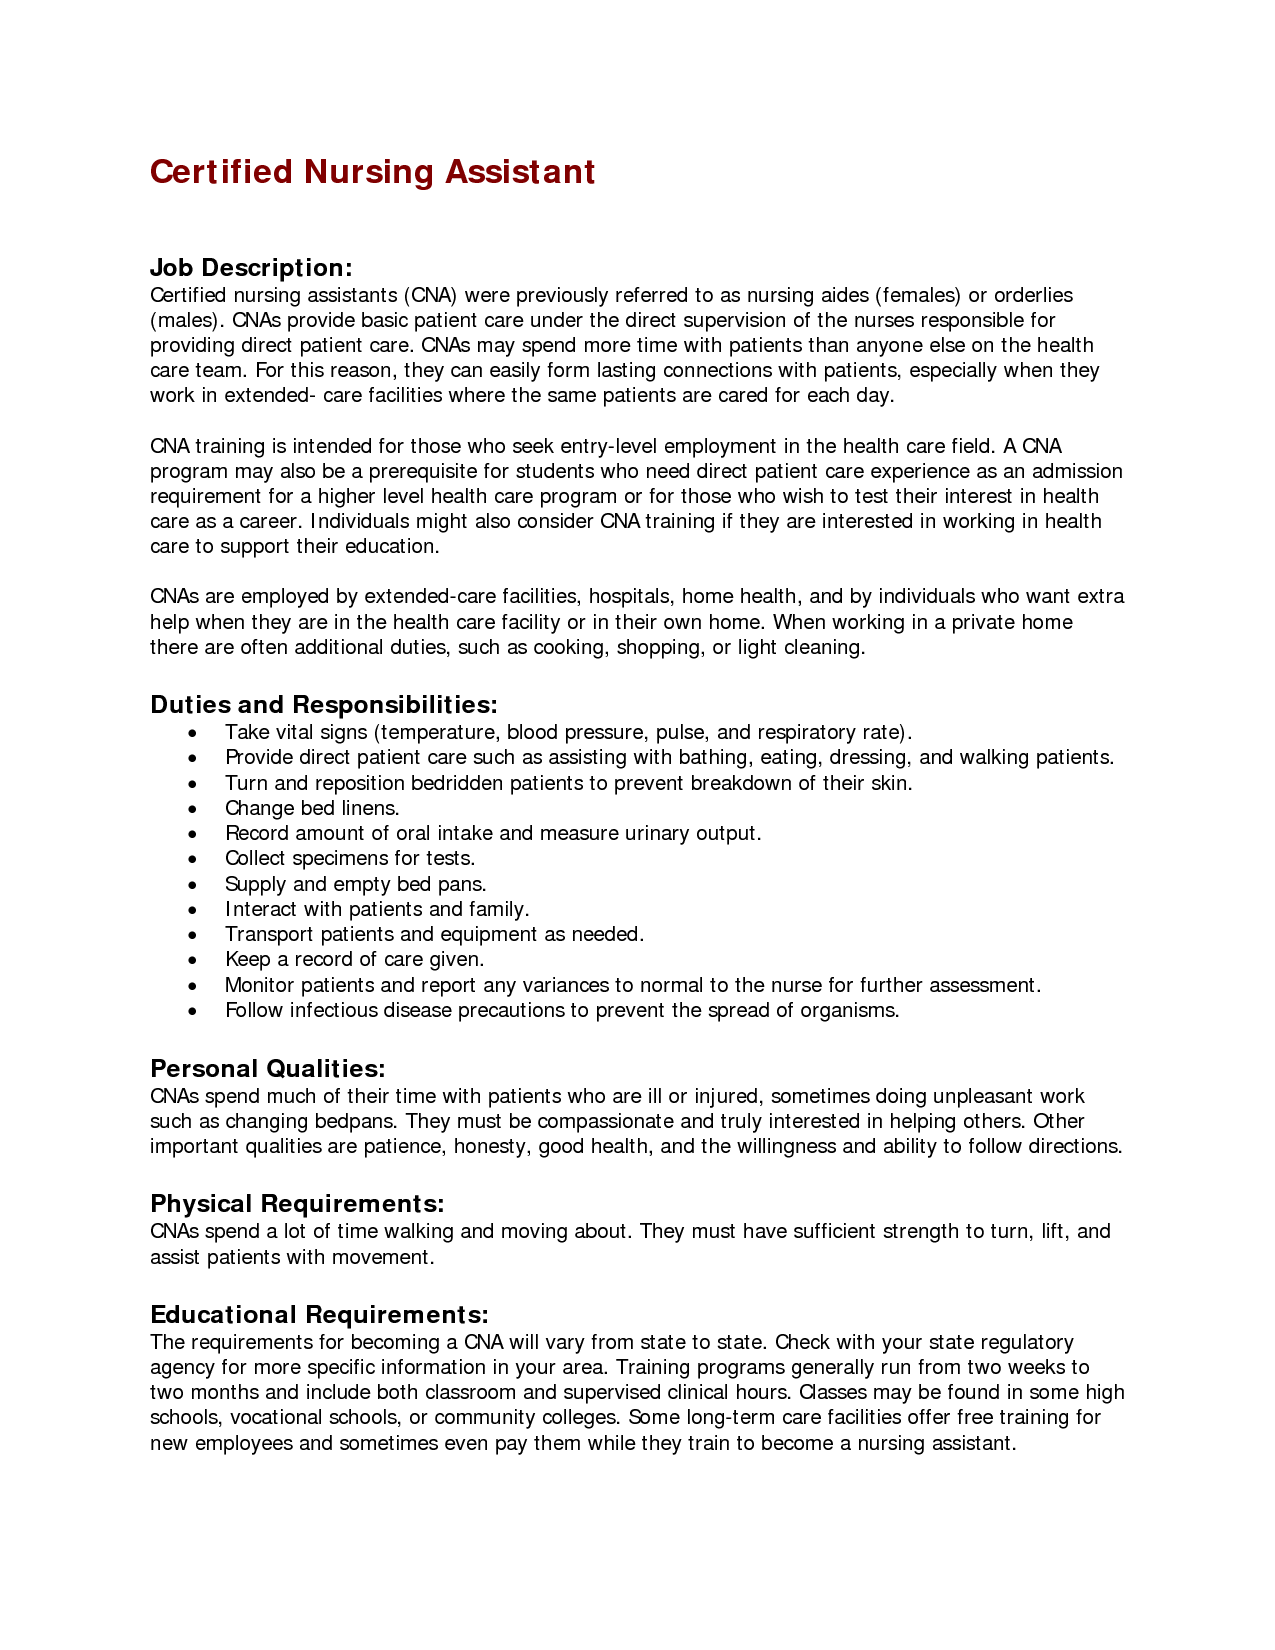 ... Responsibilities Nursing Assistant Resume Job Description CNA Duties  And Responsibilities ...  Sample Nursing Assistant Resume